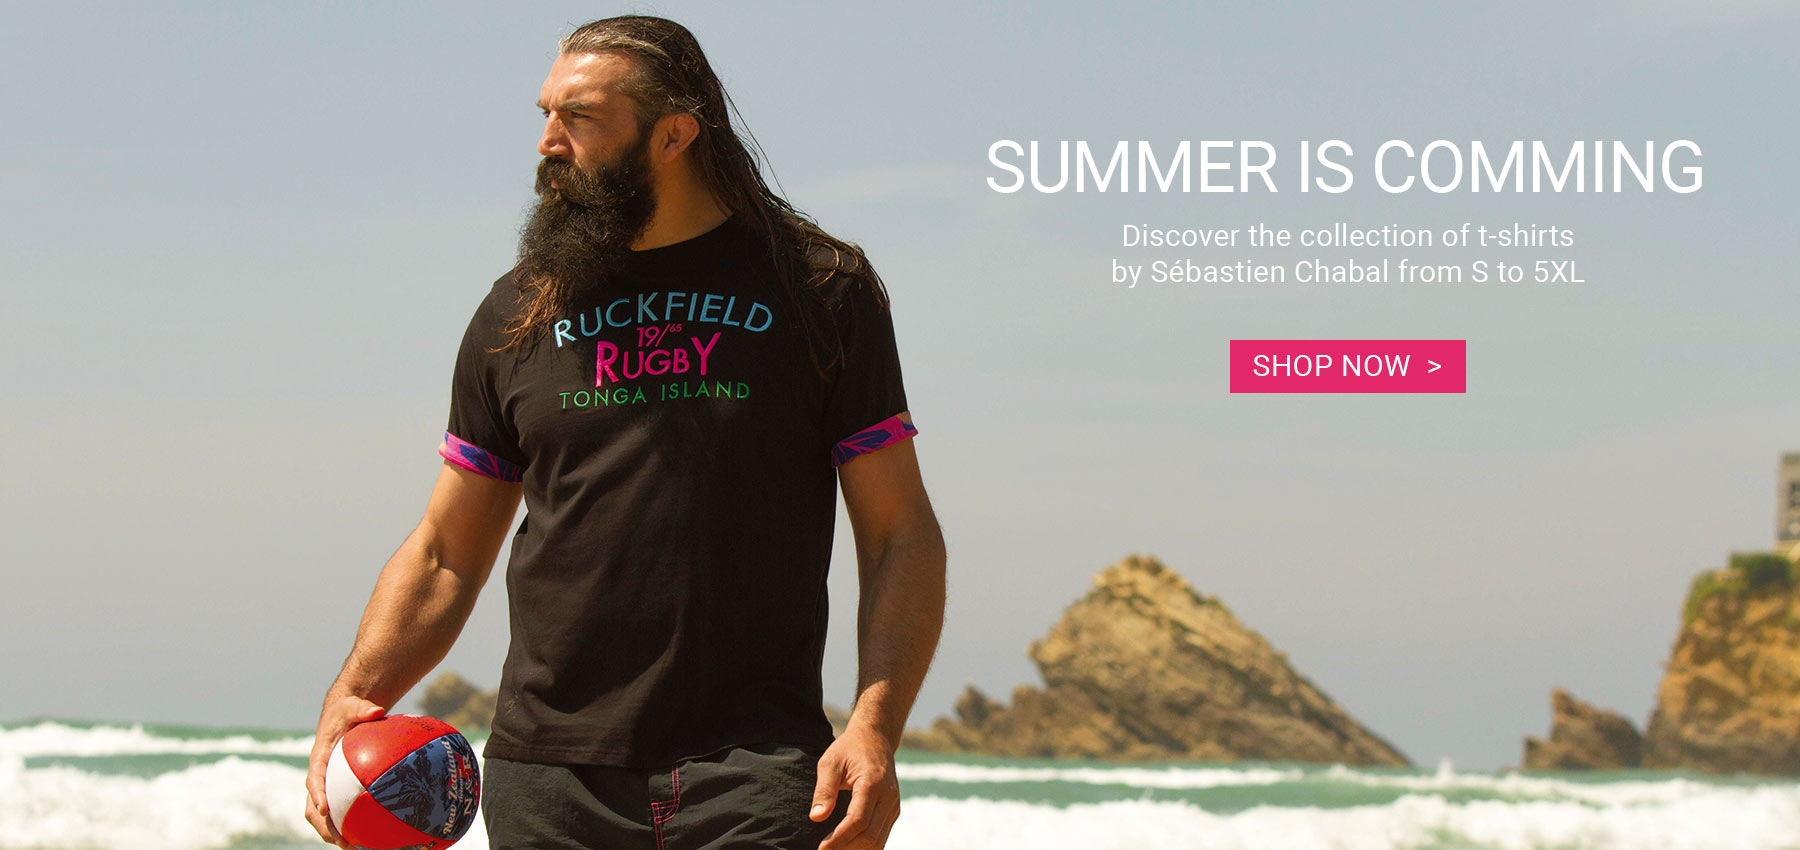 RUCKFIELD Sebastien Chabal new spring summer 2017 collection